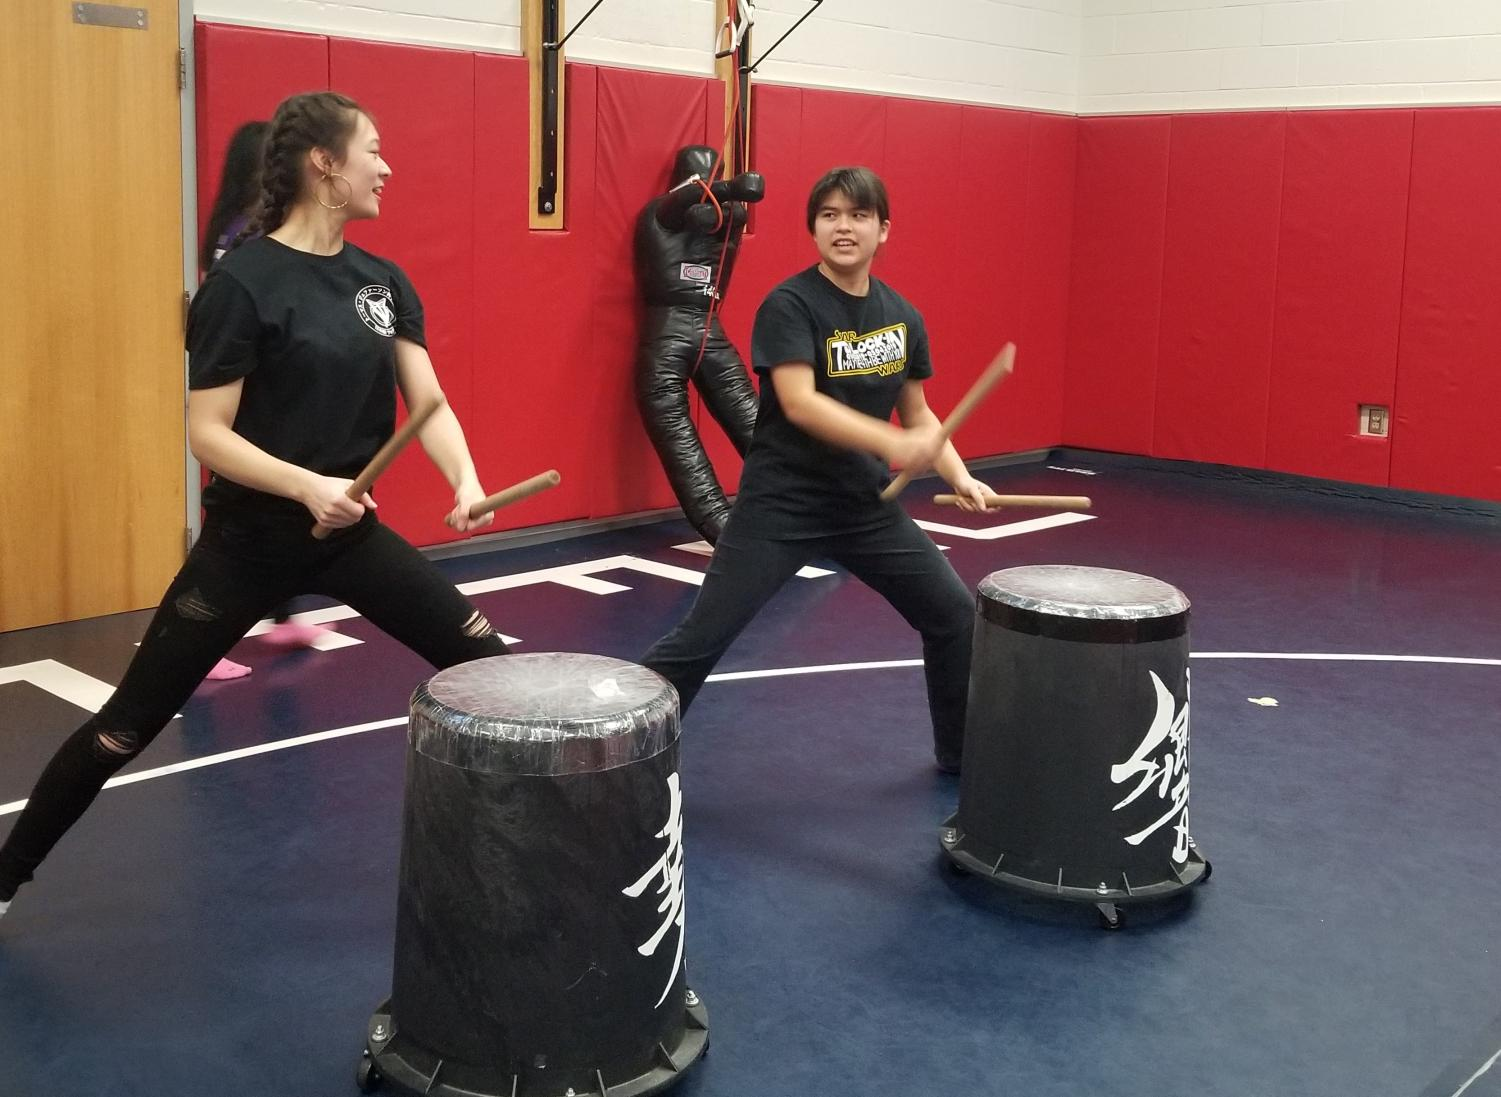 """Sophomores Alyssa Rask (right) and Alana Nii (left) perform a taiko routine as a duet. """"I love the program here at TJ because it's very relaxed. I also do taiko outside of school, and my experience with the taiko community is just - there's a lot of fantastic people,"""" Nii said."""